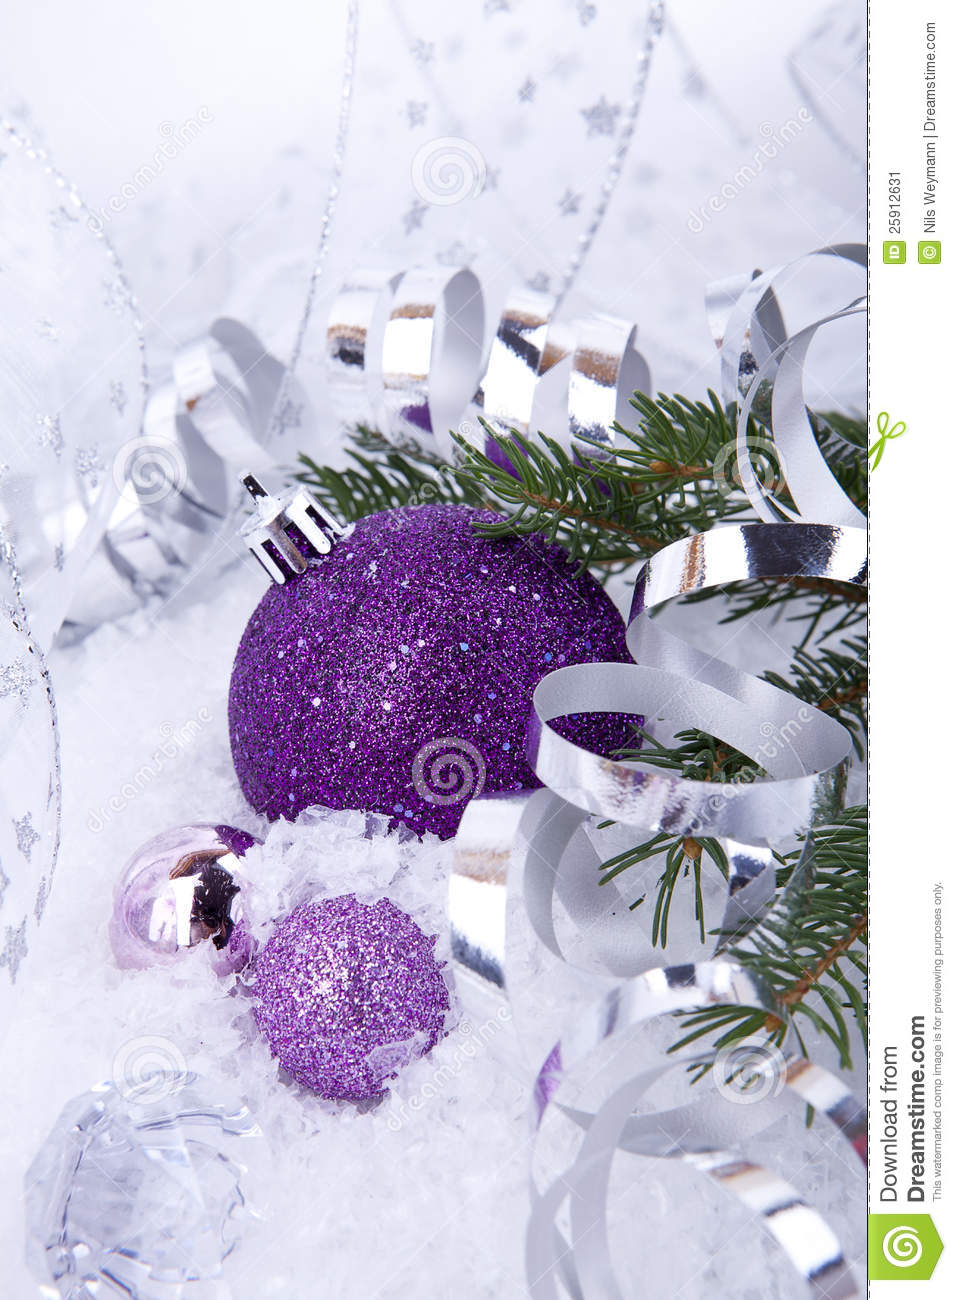 Purple and silver christmas decorations - Christmas Decoration Purple Silver On Snow Stock Image